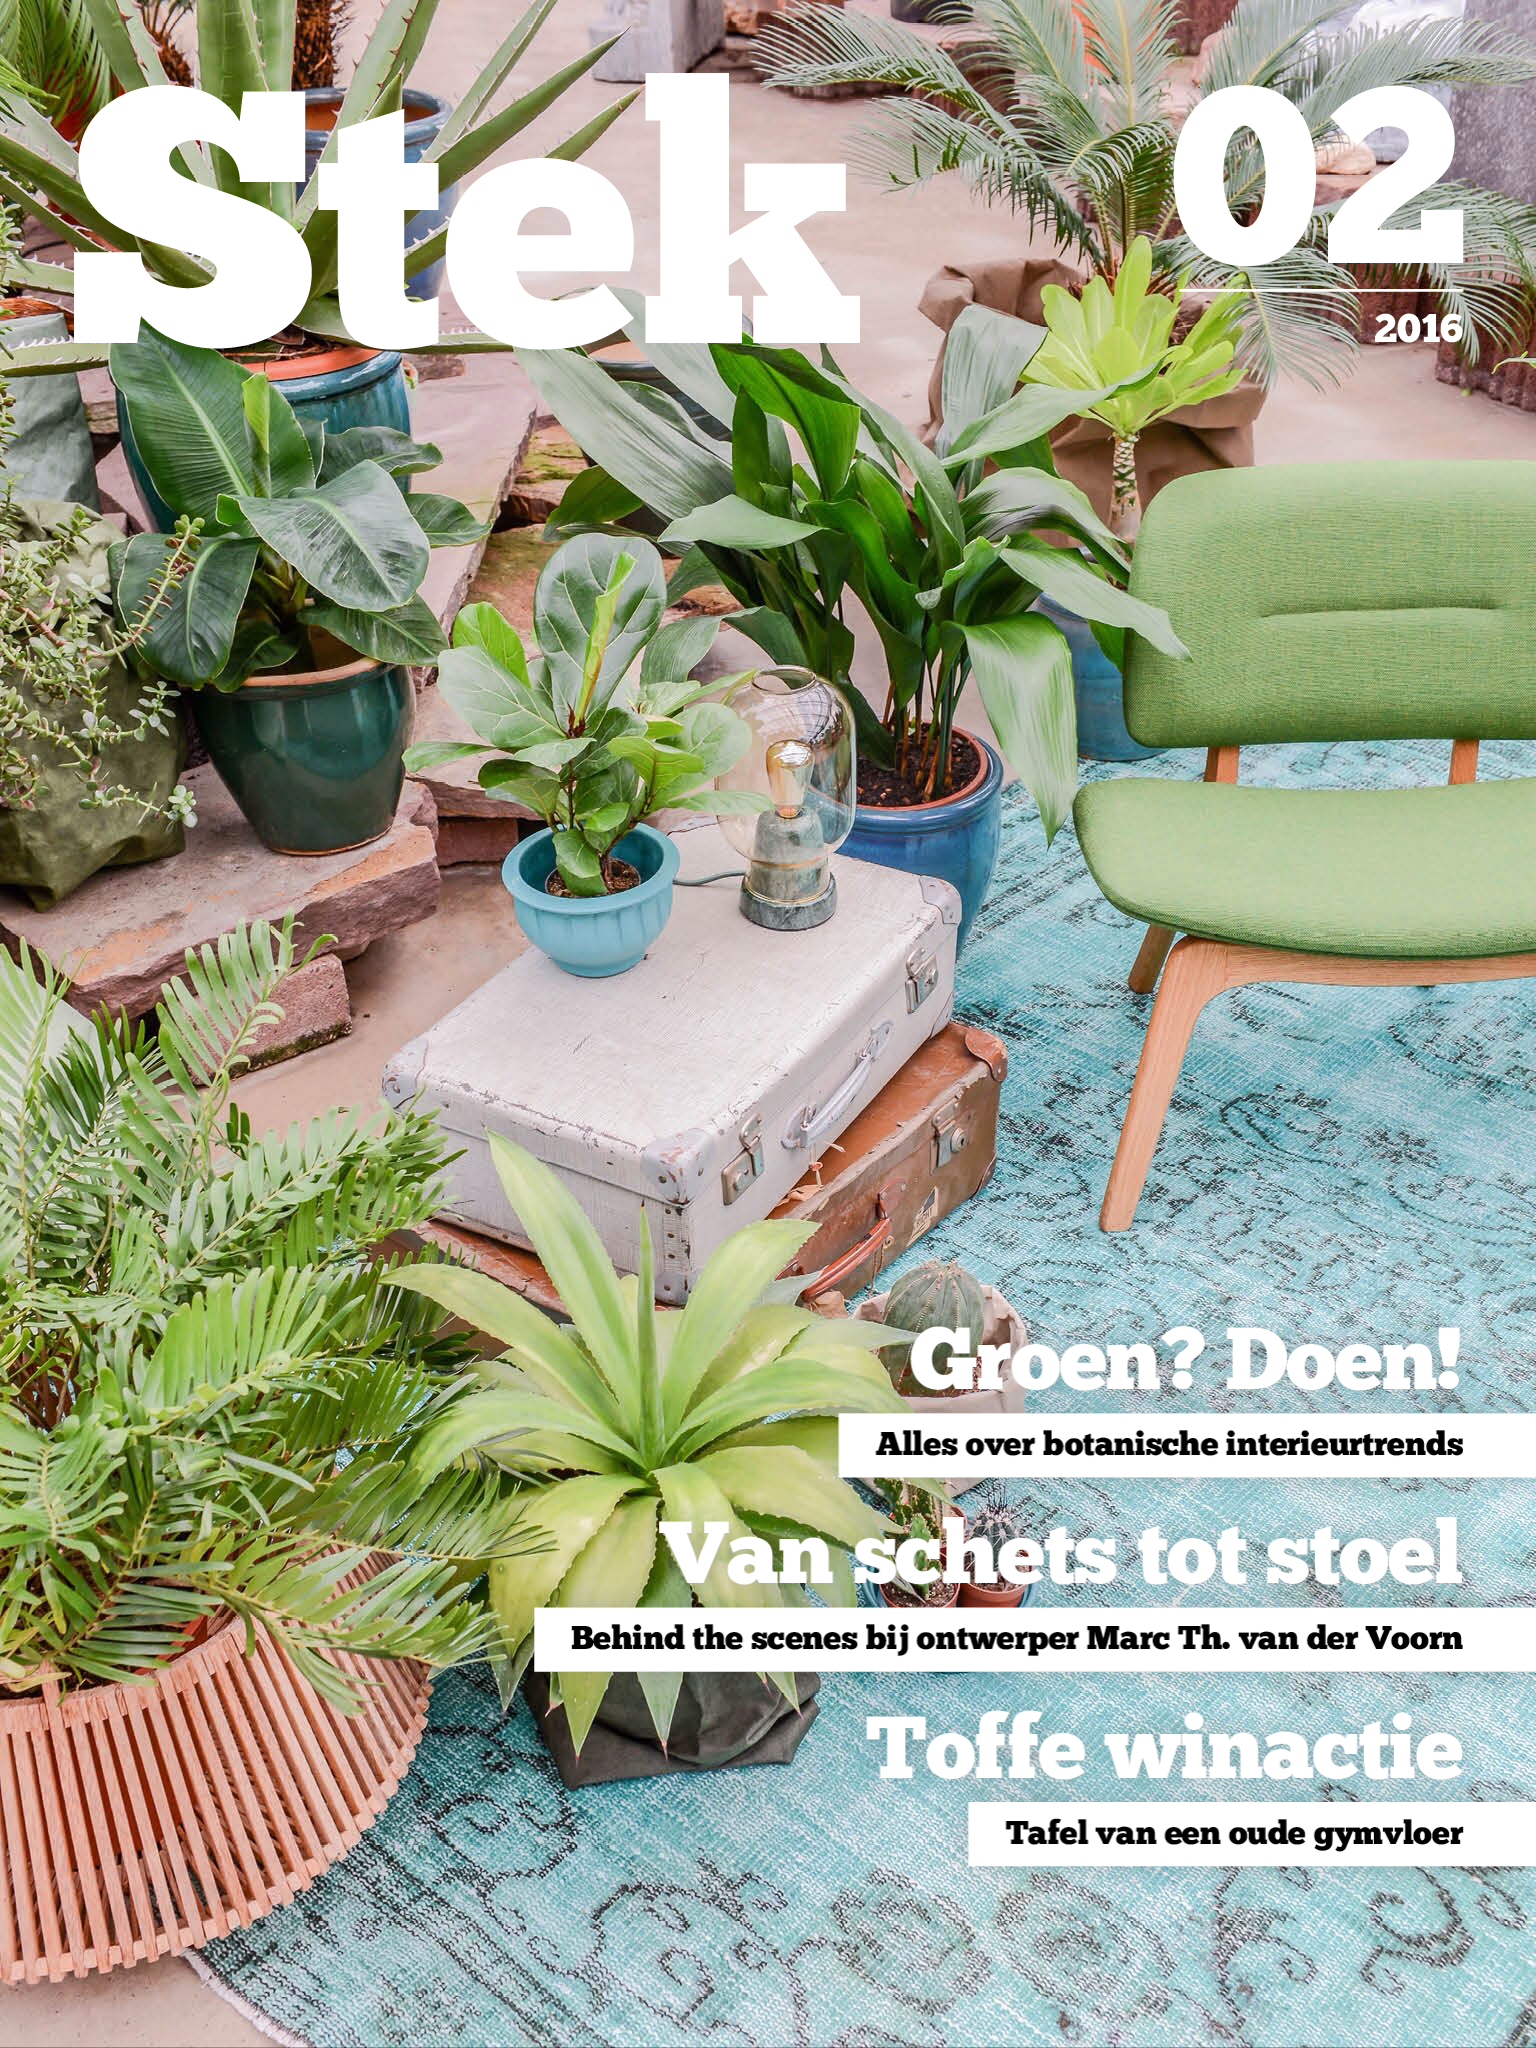 Coverbeelden Stek Magazine